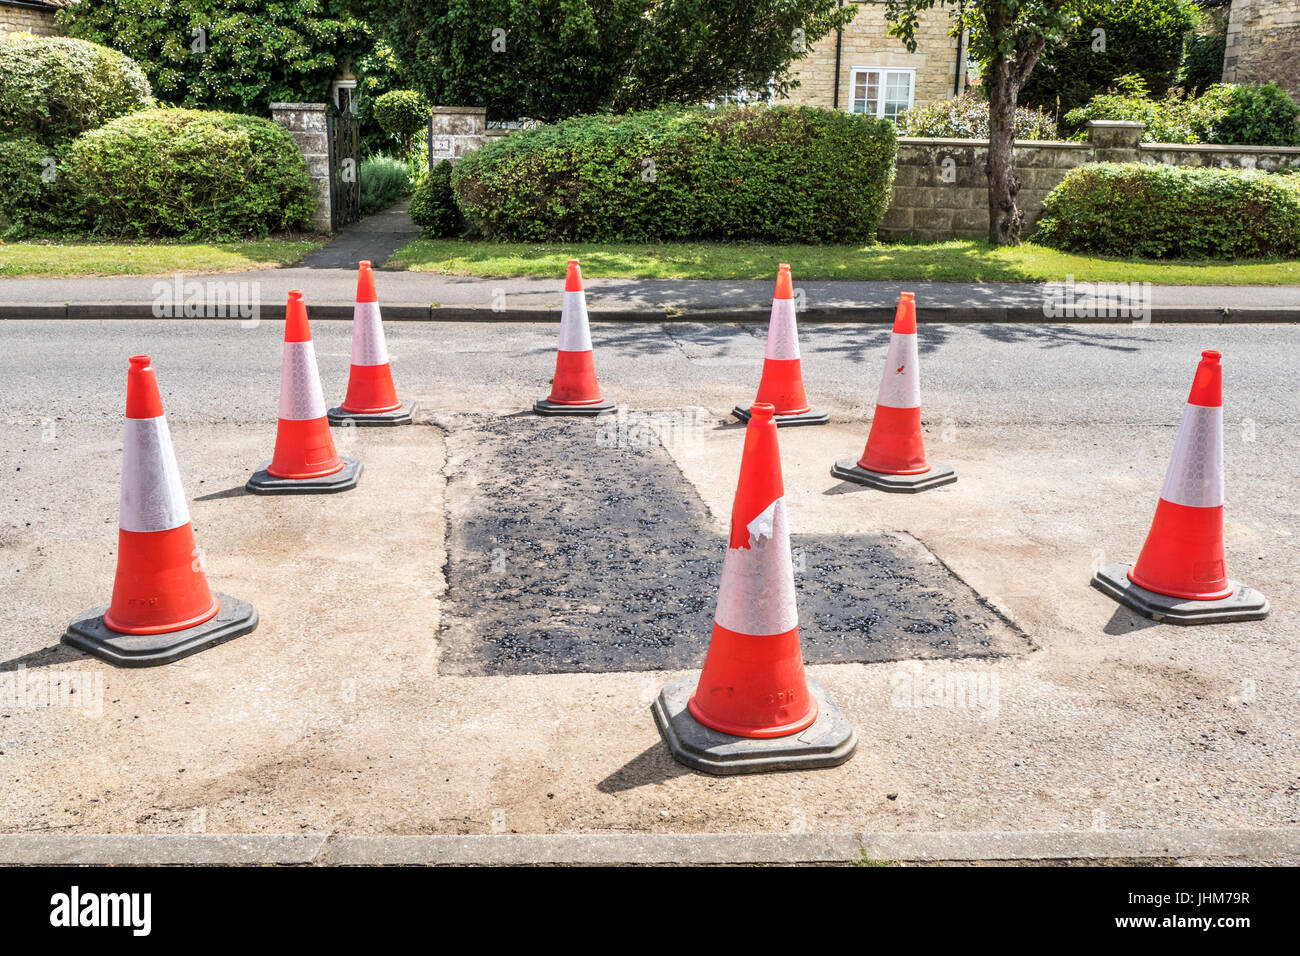 Cones around newly laid Tarmac in Langtoft village, Lincolnshire, England, UK. - Stock Image